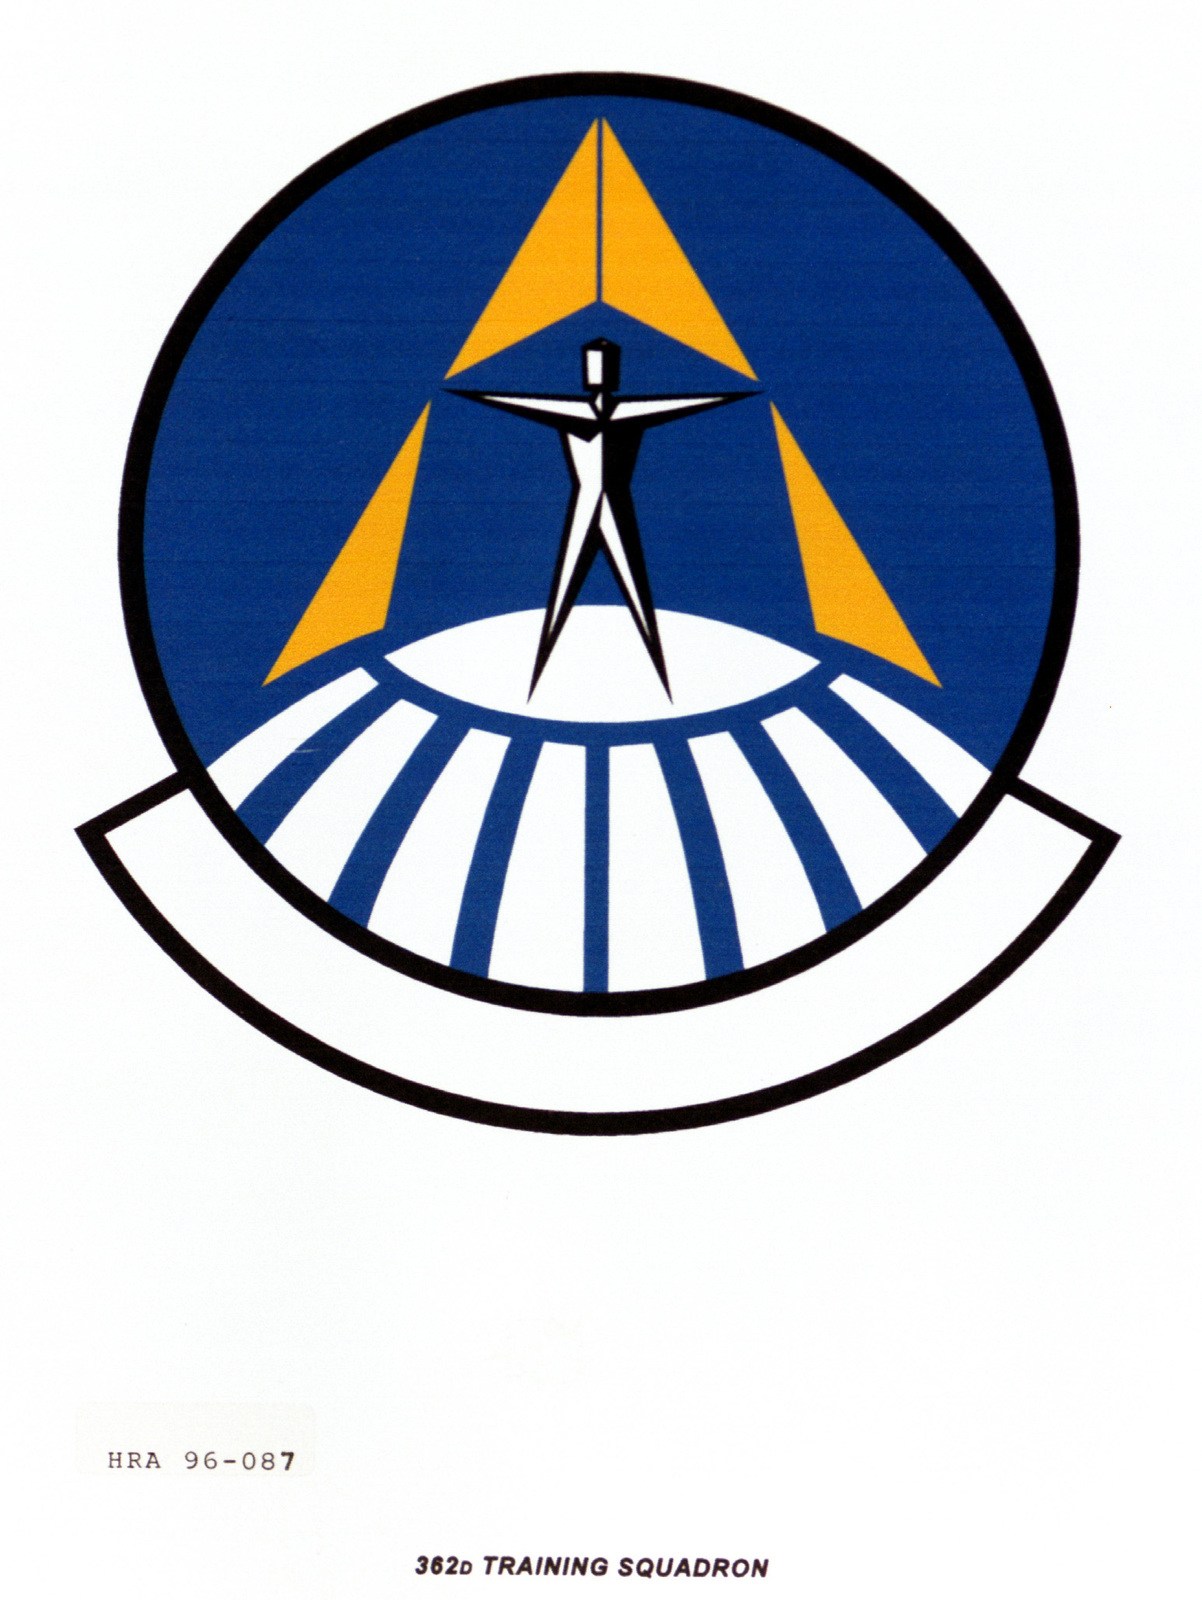 Air Force Organizational Emblem. 362nd Training Squadron Exact Date Shot Unknown